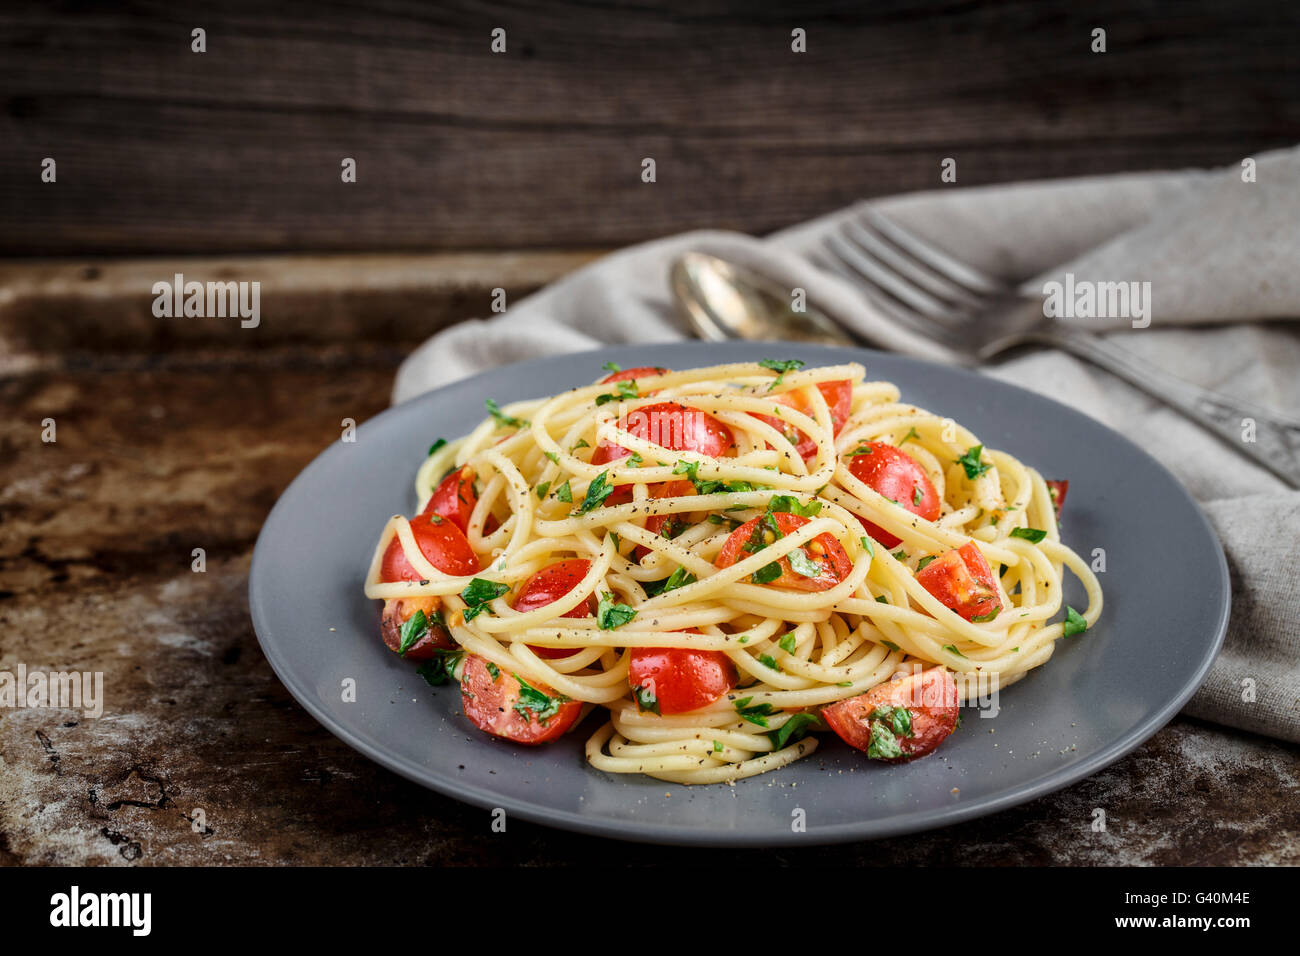 Spaghetti pasta with cherry tomatoes and parsley on rustric background - Stock Image